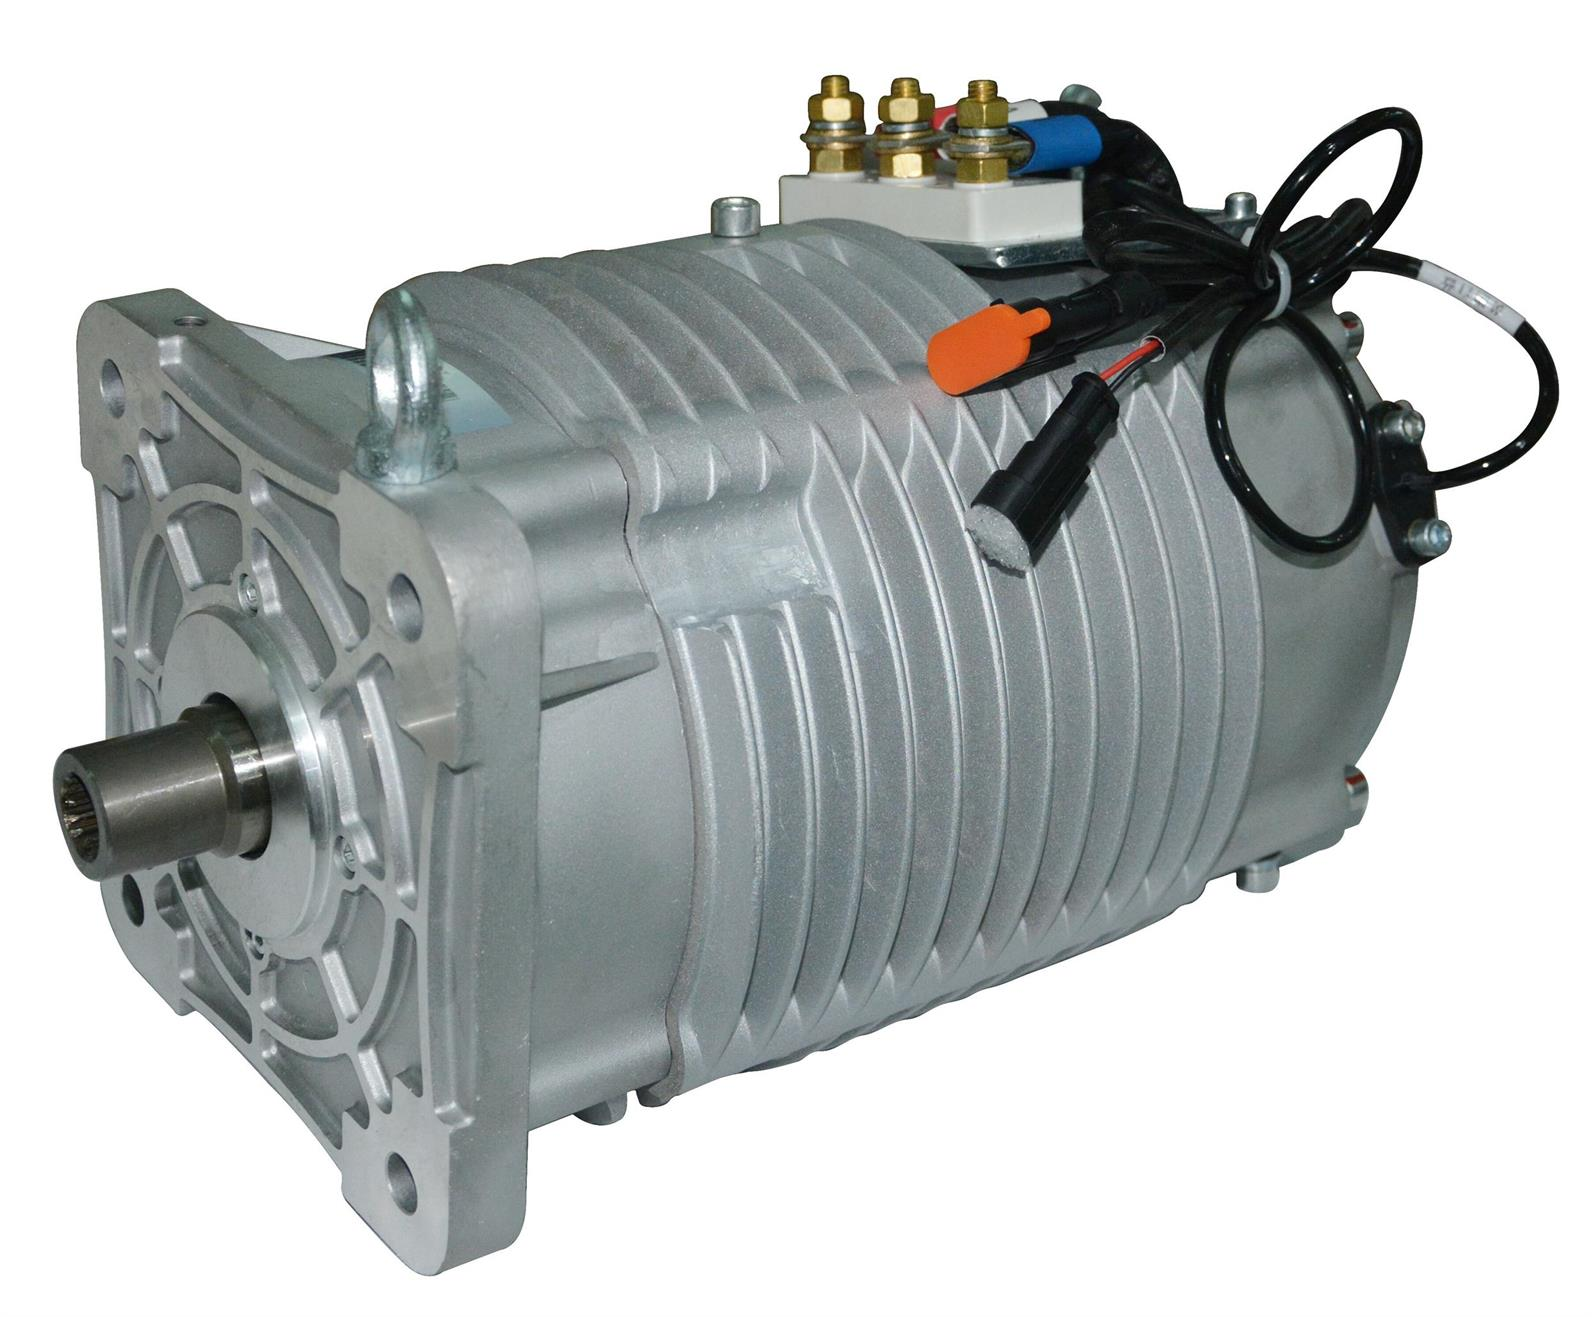 10kw AC induction motor for EV